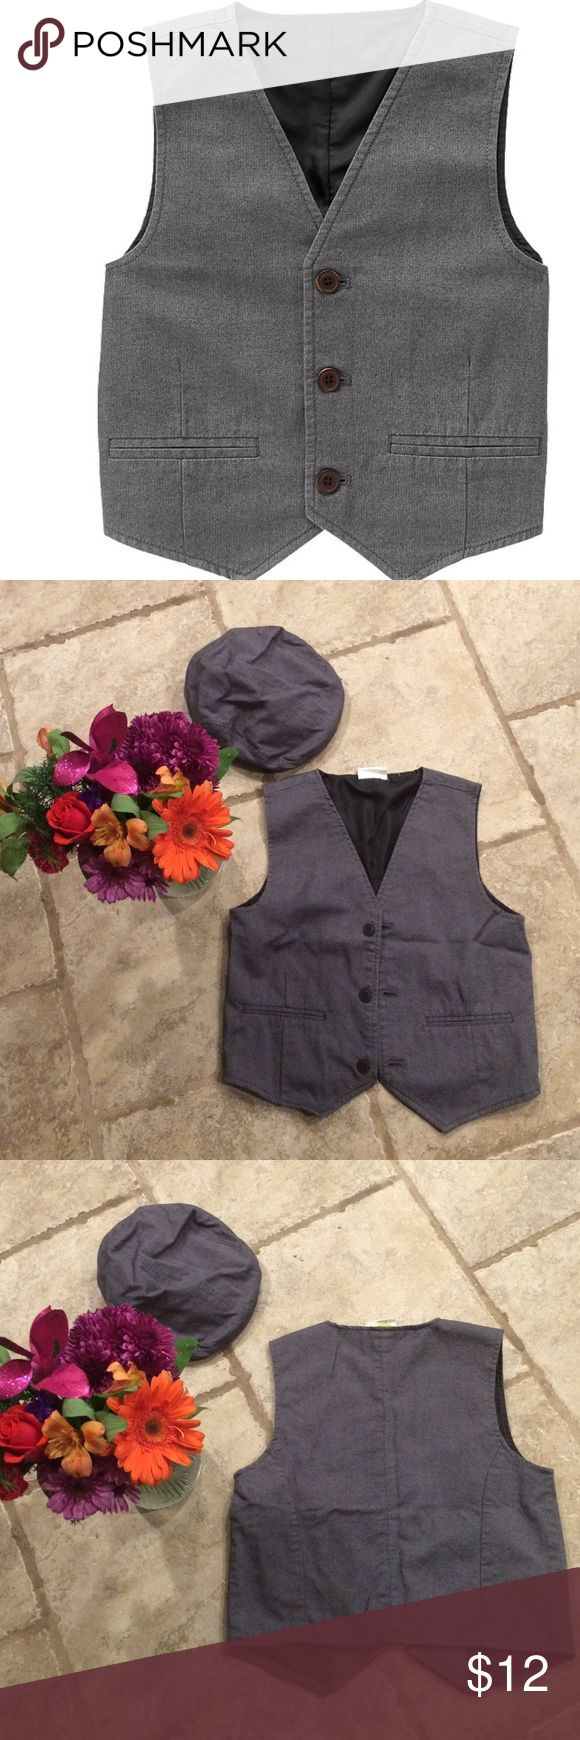 Boys gray button up vest Boys gray button up vest. Nice for dressing up with dress shirt or wear with white t-shirt. Size Medium 7-8 also have size 2T. Have matching caps available in sizes 10-12 and 12-24 months. Worn 1x to a wedding. Crazy 8 Jackets & Coats Vests